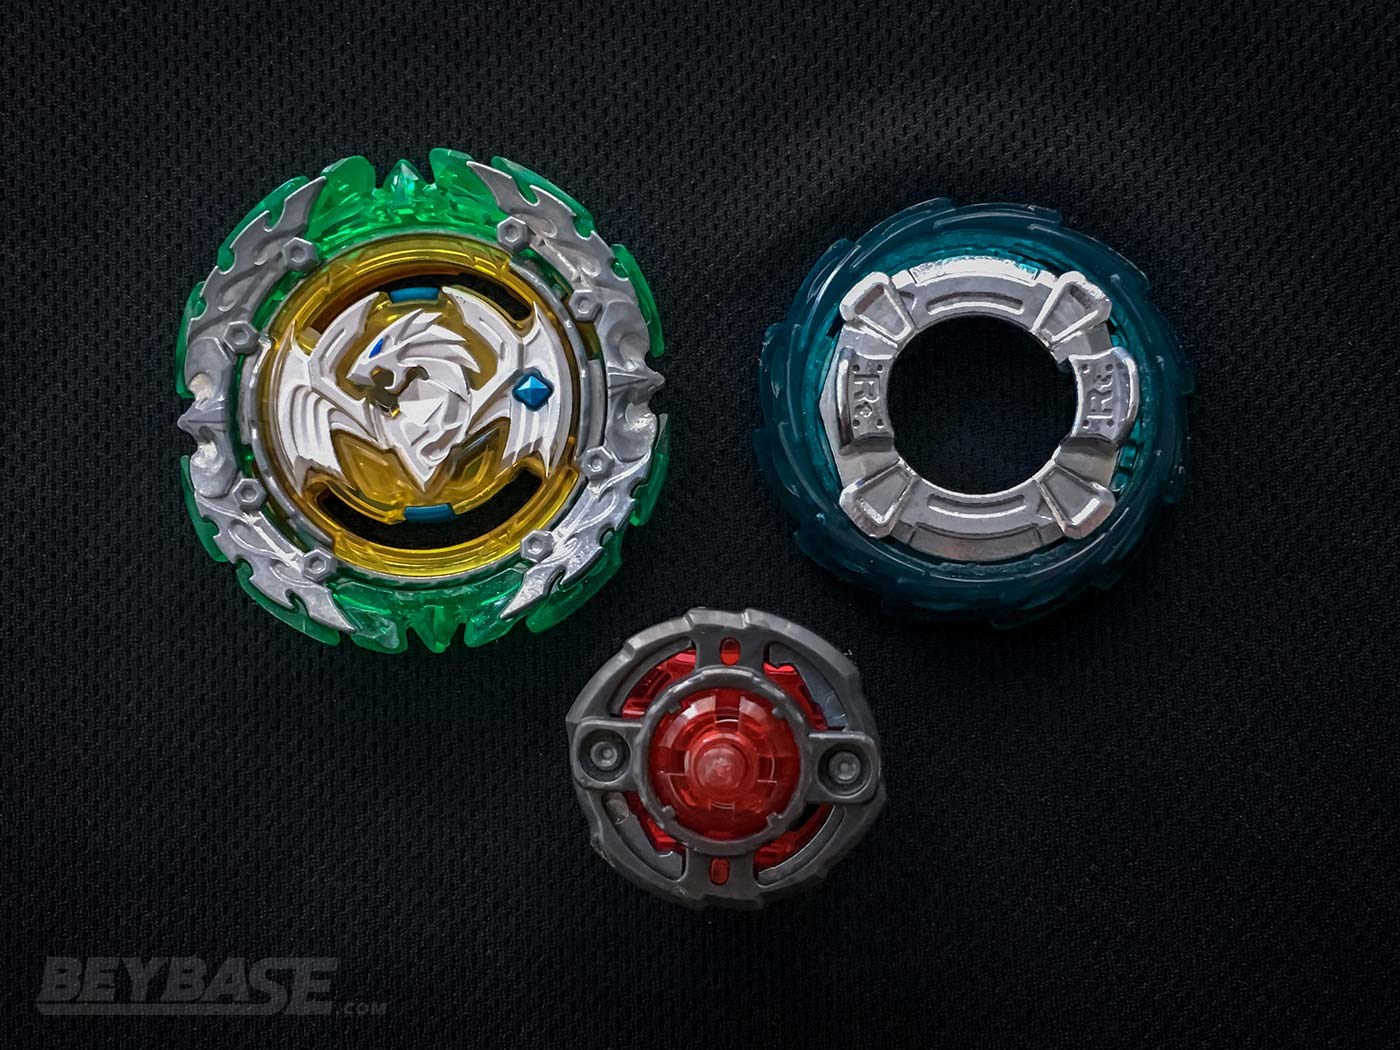 level chip perfect phoenix ratchet bullet beyblade burst combo